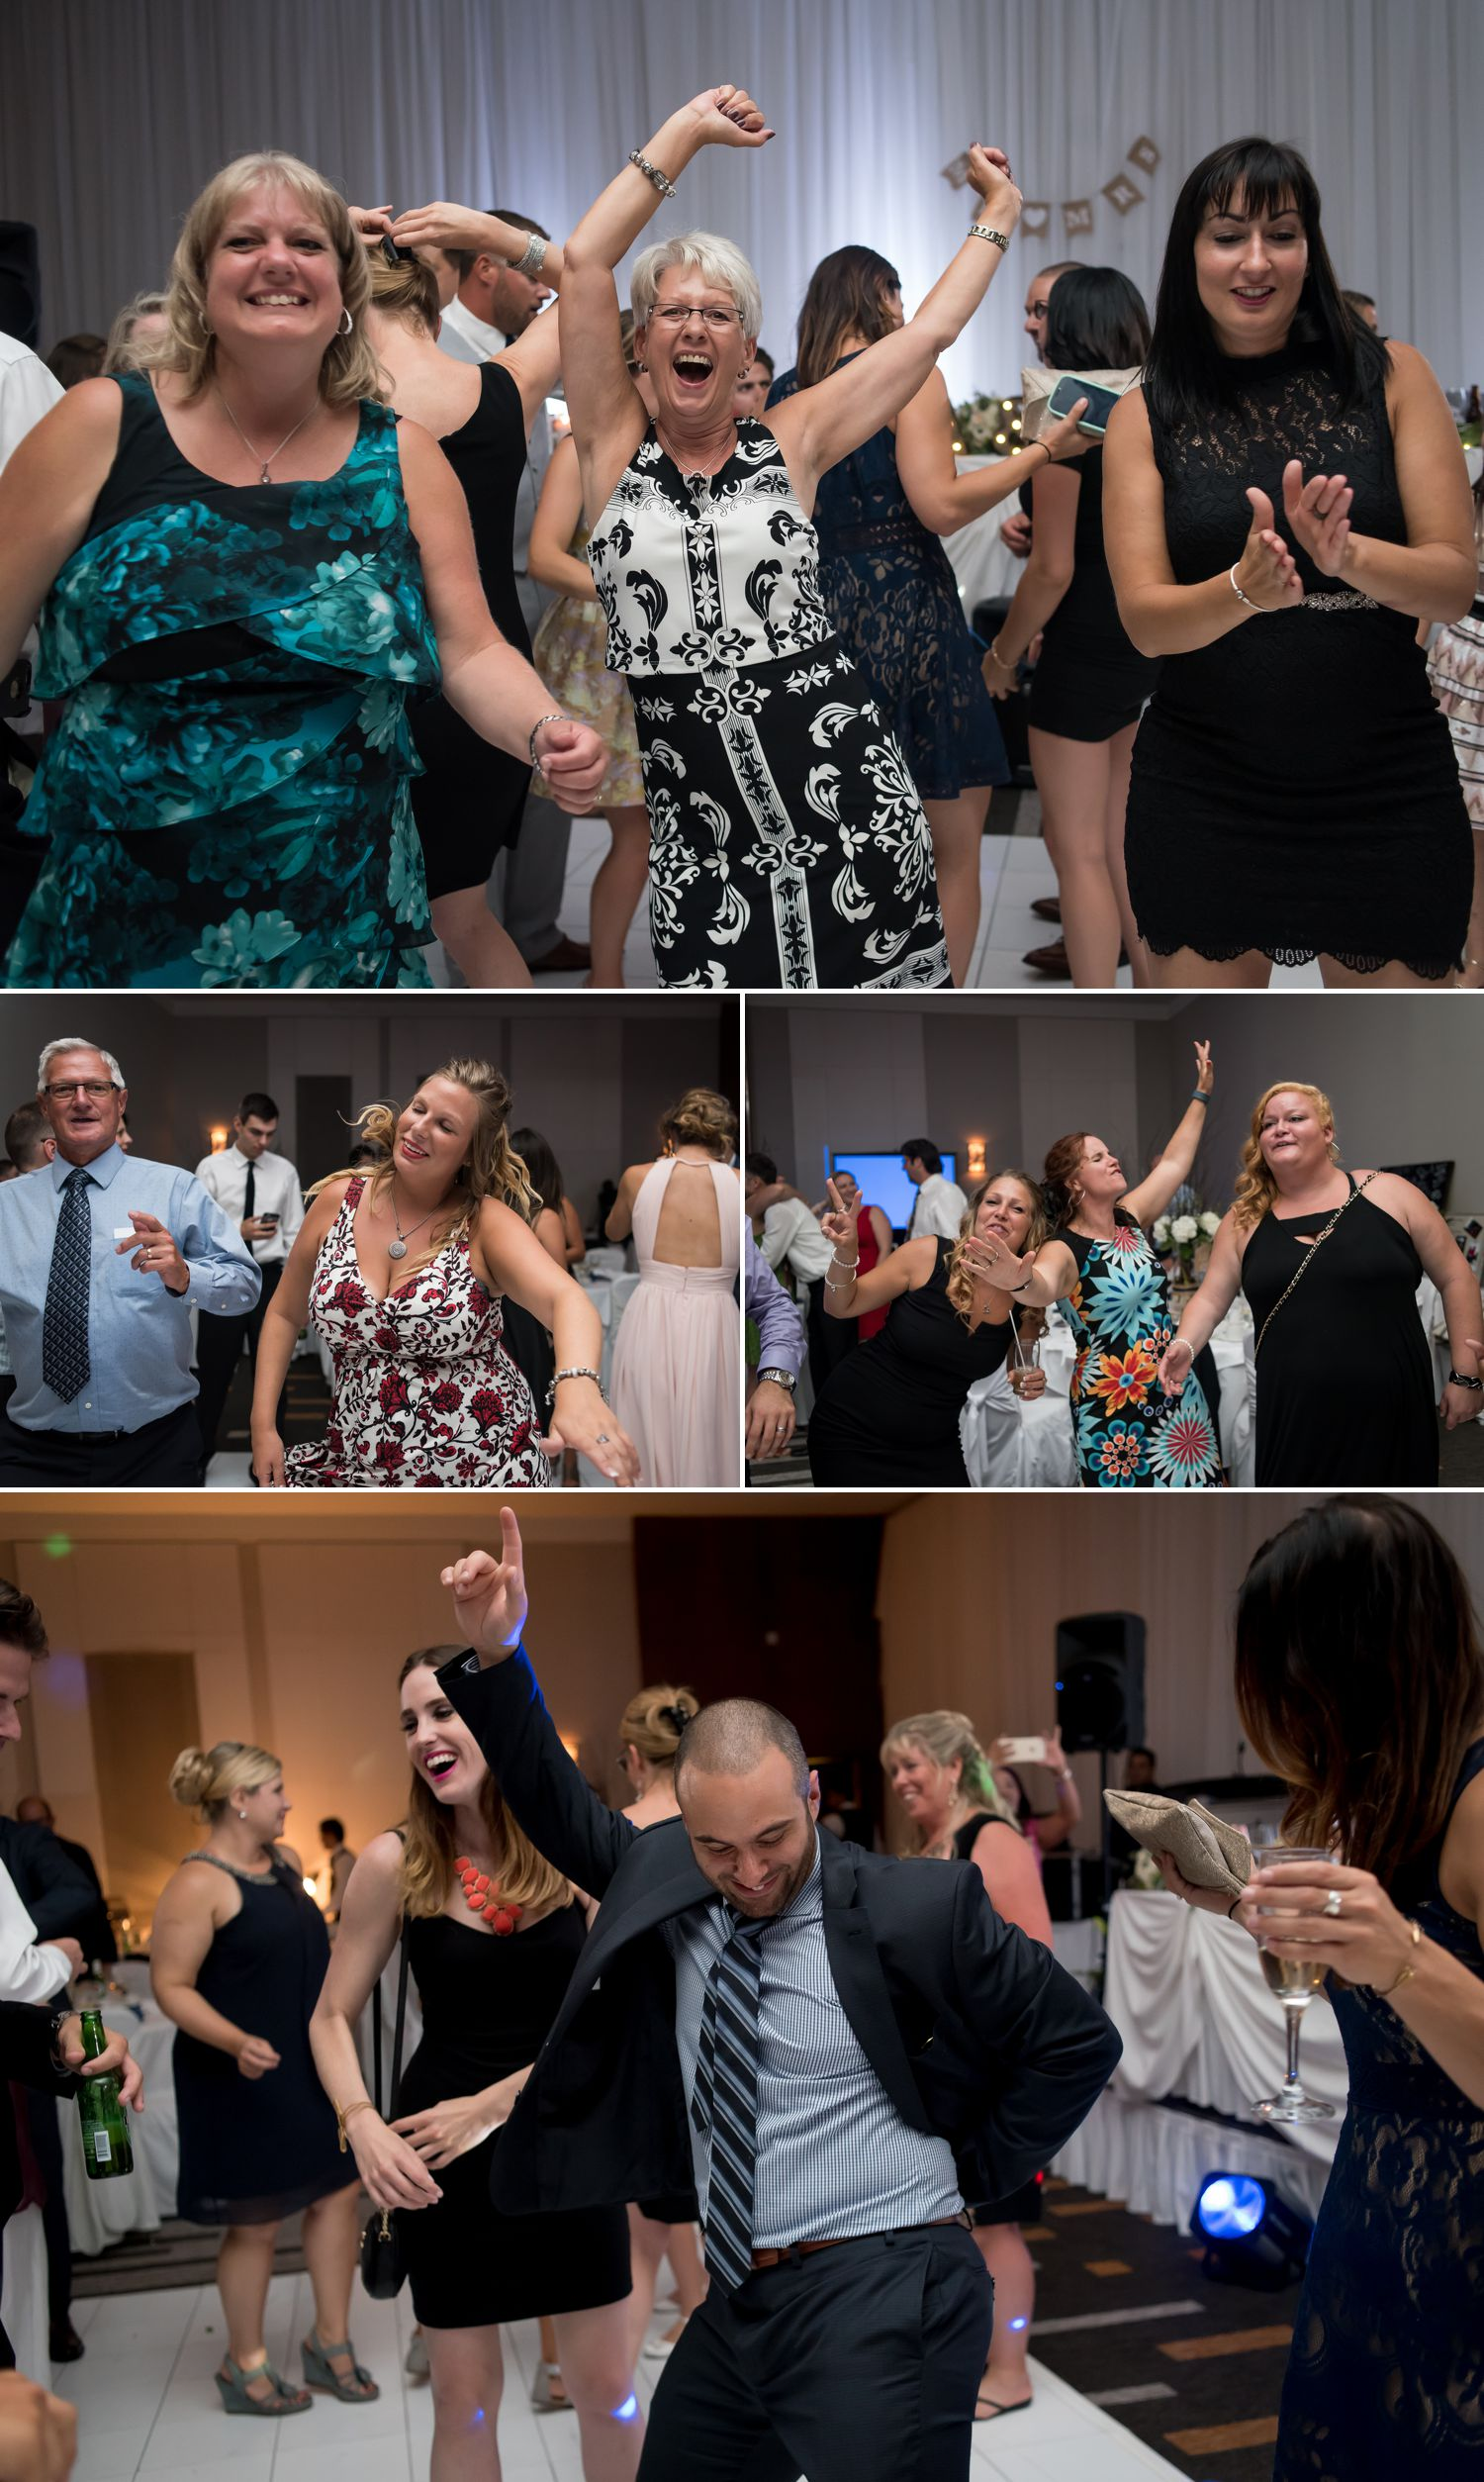 Guests dancing during a wedding reception at The Delta Hotel in downtown Ottawa